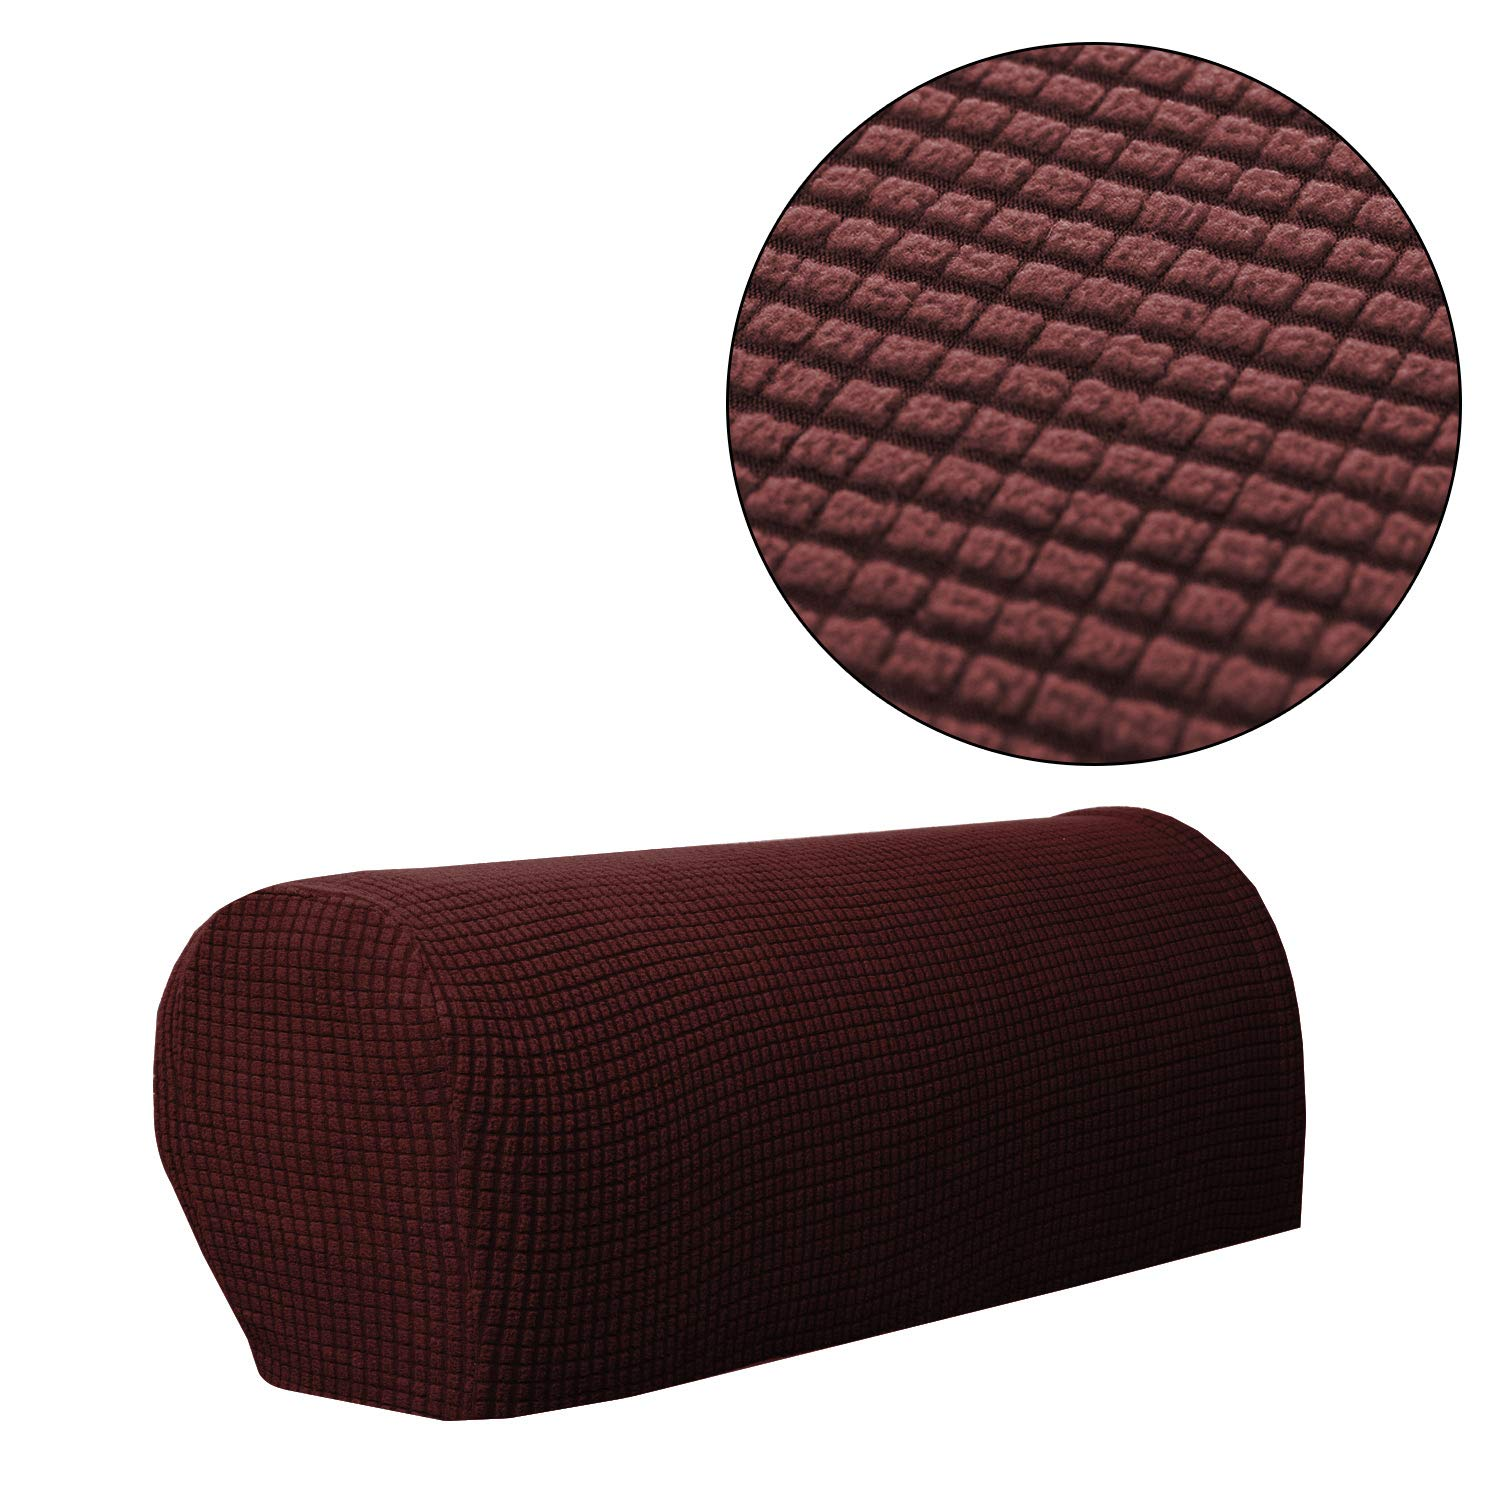 Sofa Armrest Cover Stretch Armchair Slipcover Furniture Armrest Protector For Sofa Chair Recliner Couch Loveseat Set Of 2 Brown